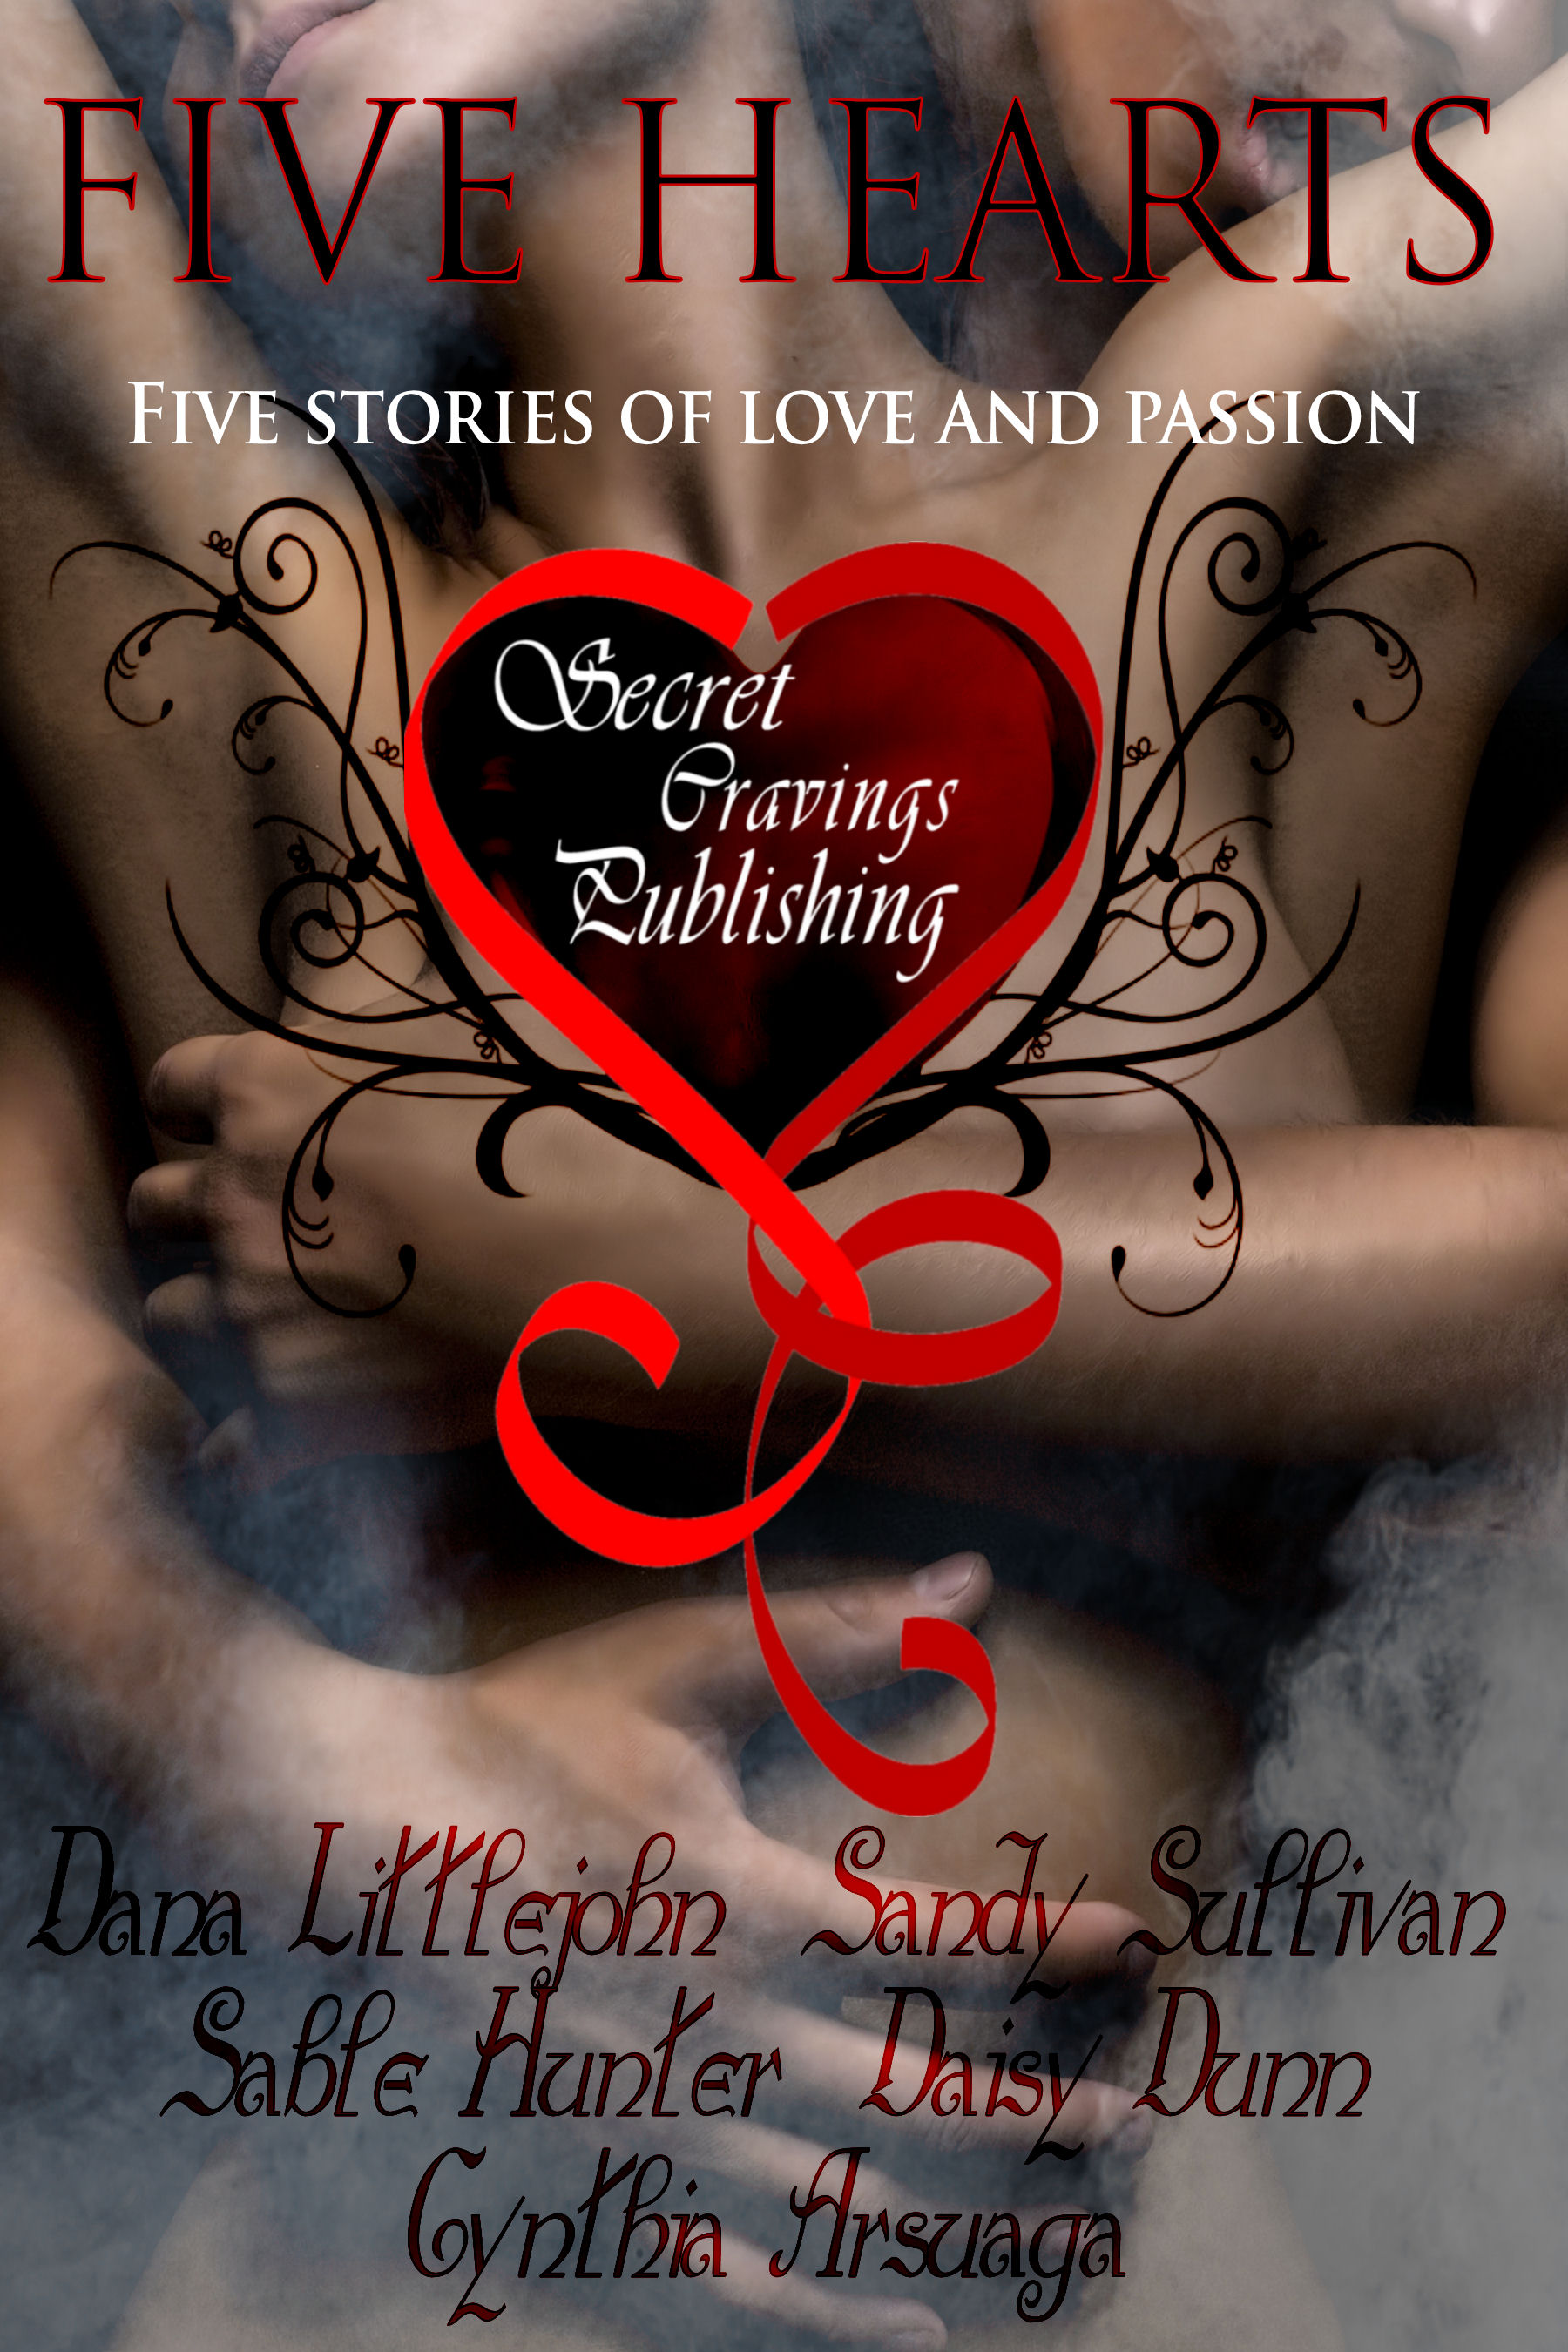 Five Hearts Anthology - Dana Littlejohn